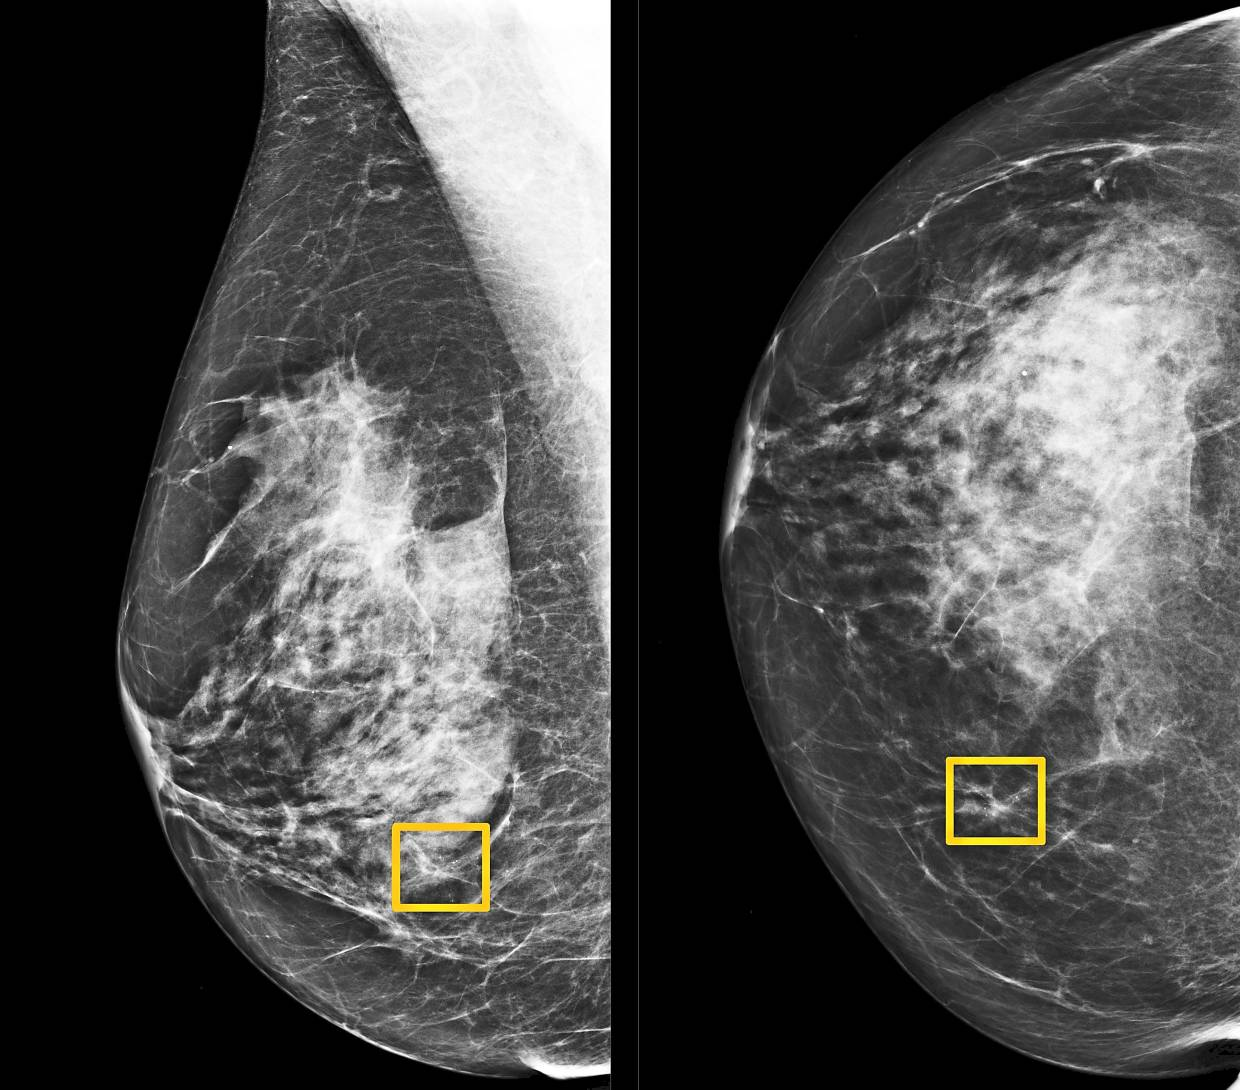 A yellow box indicates where an AI system found cancer hiding inside breast tissue in this undated photo released by Northwestern University in Chicago, United States. New technologies will certainly continue to make an impact on healthcare. — Reuters